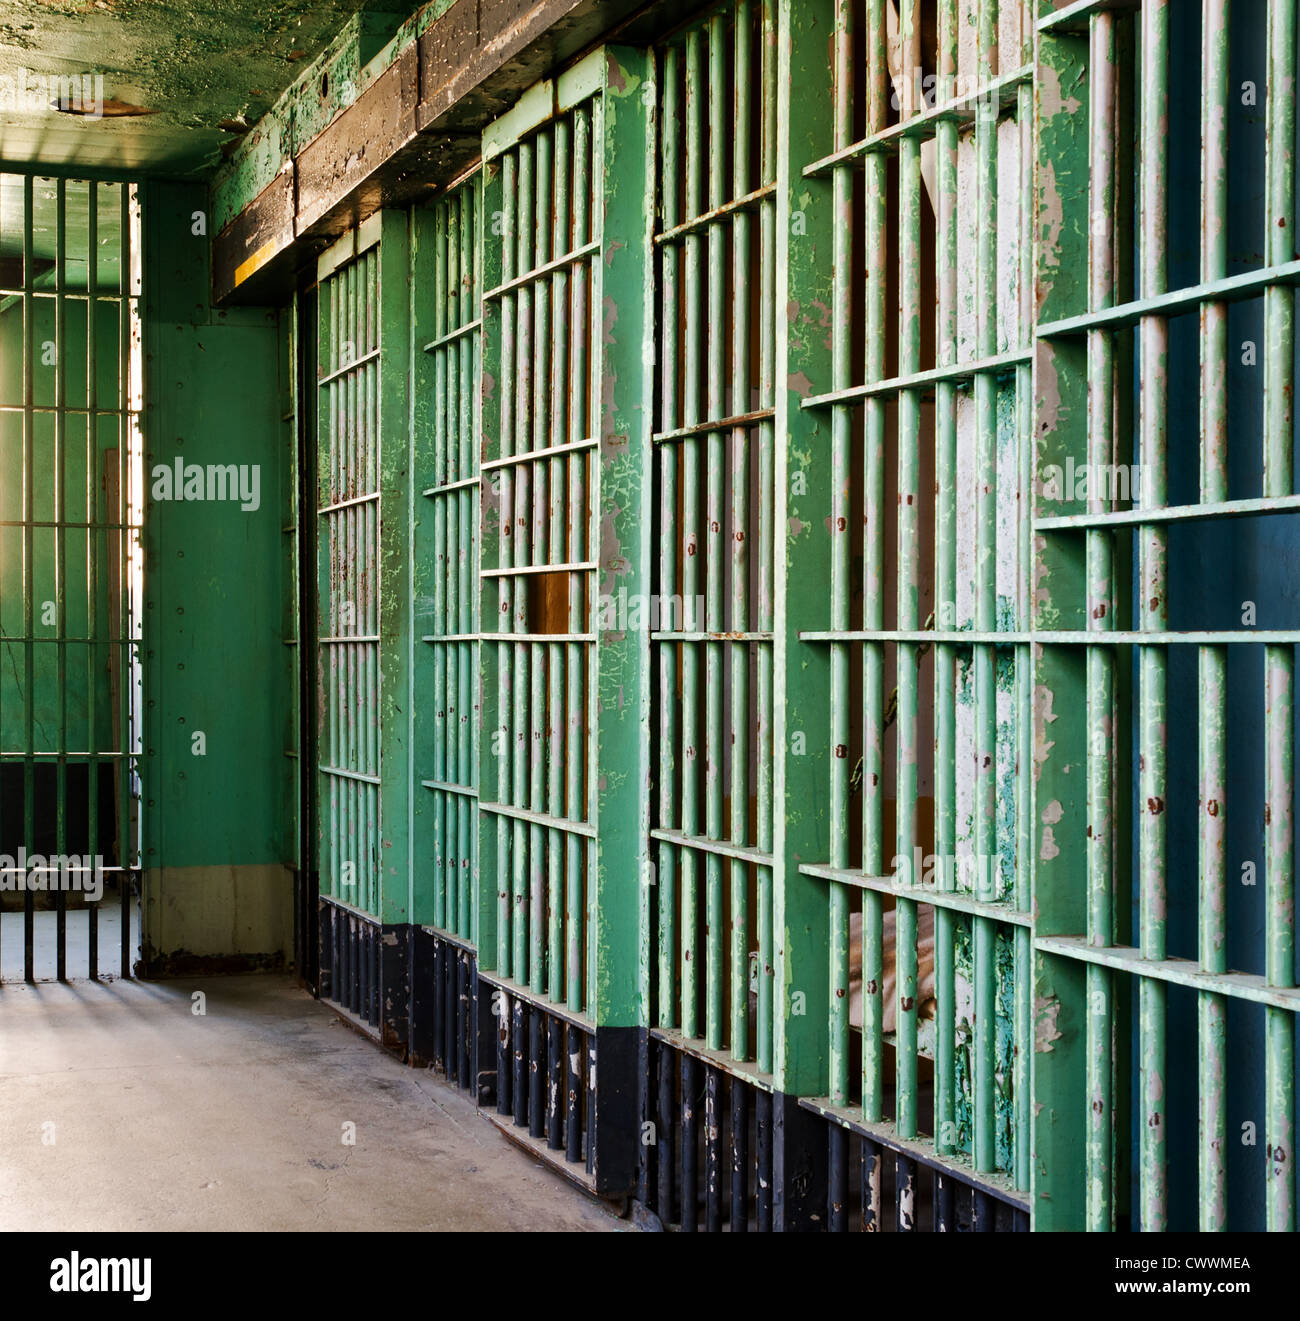 Historic old Idaho prison with a decrepit scary look to it. - Stock Image